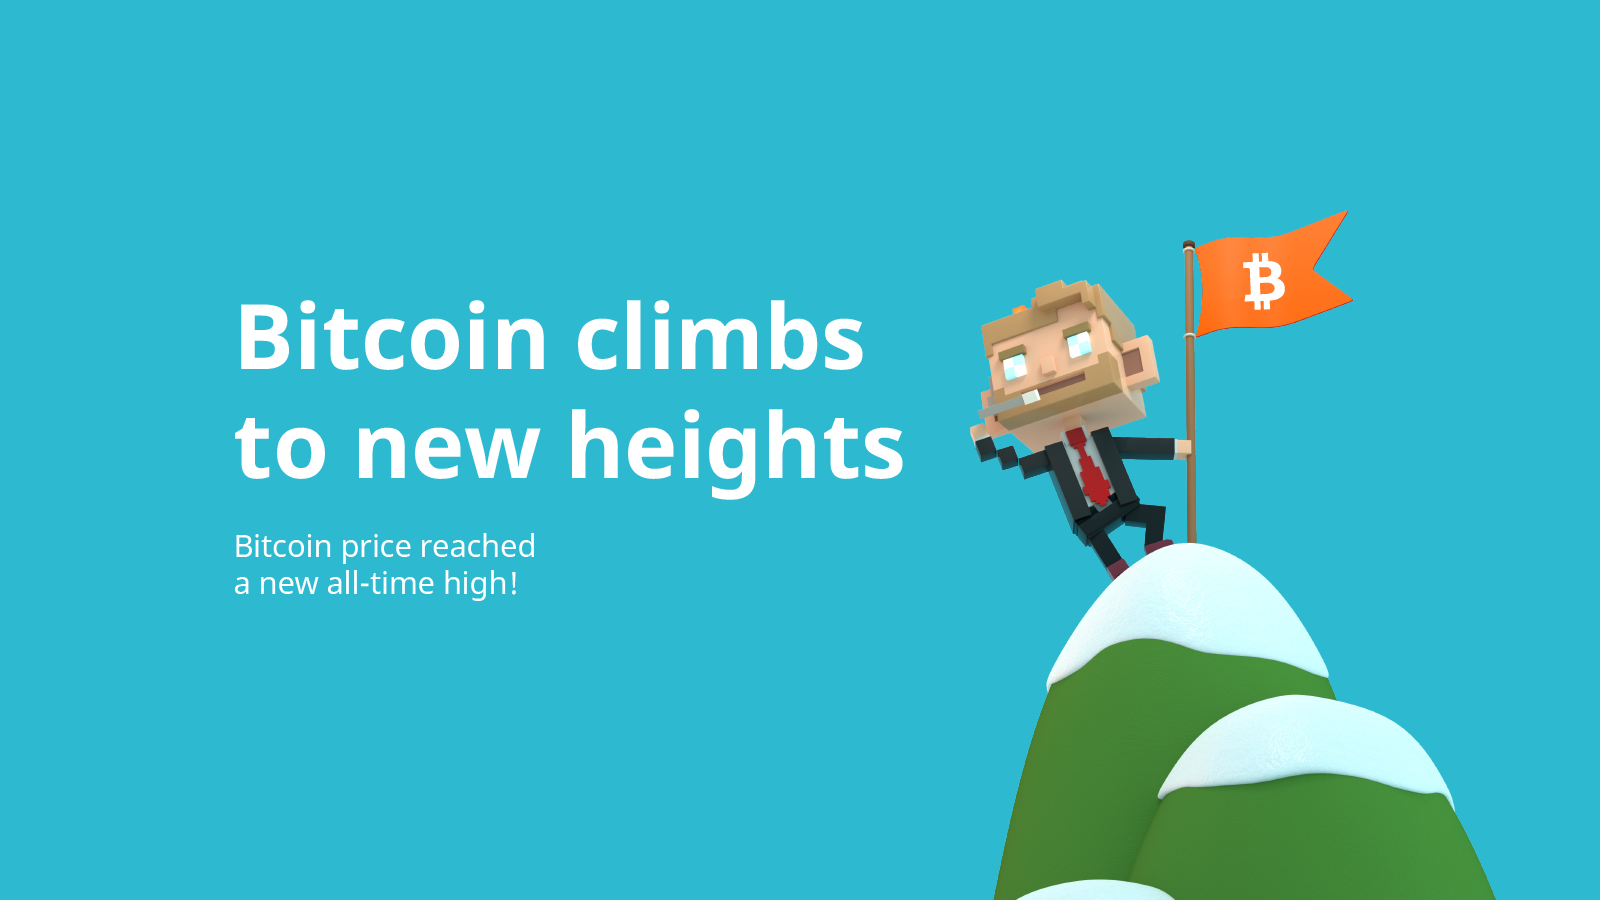 Bitcoin (BTC) price reached a new all-time high!